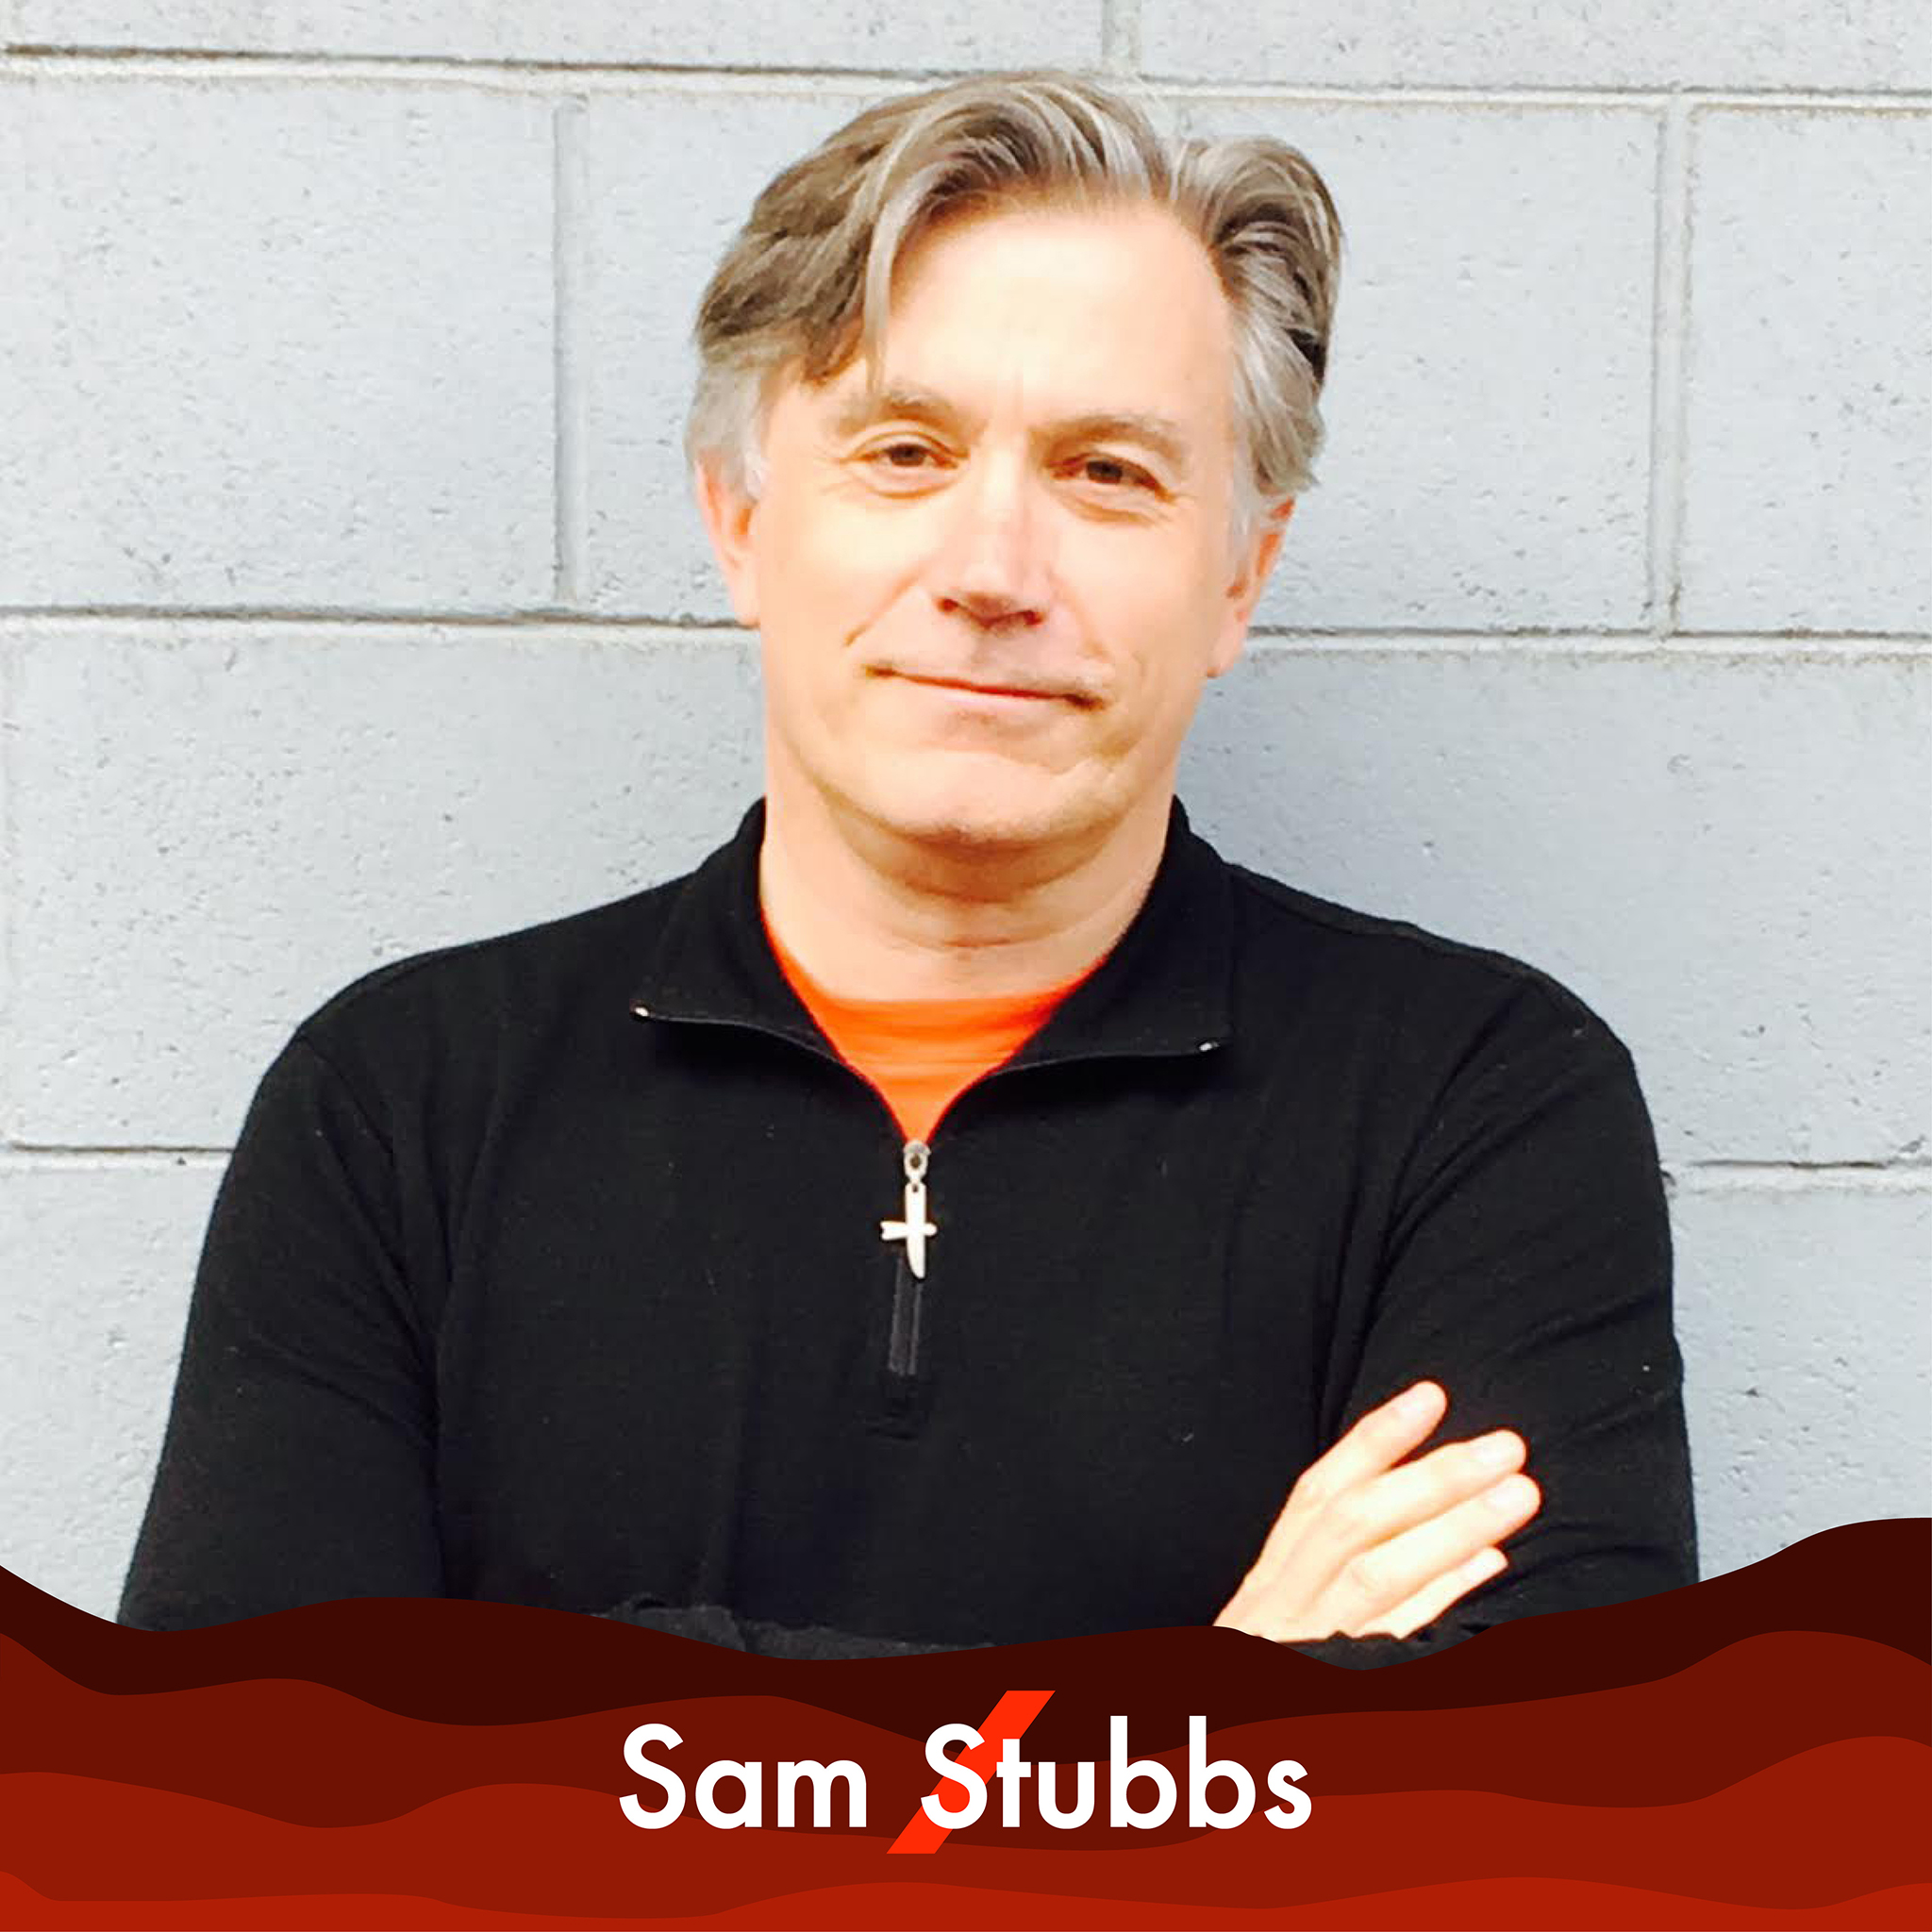 A picture of Sam Stubbs